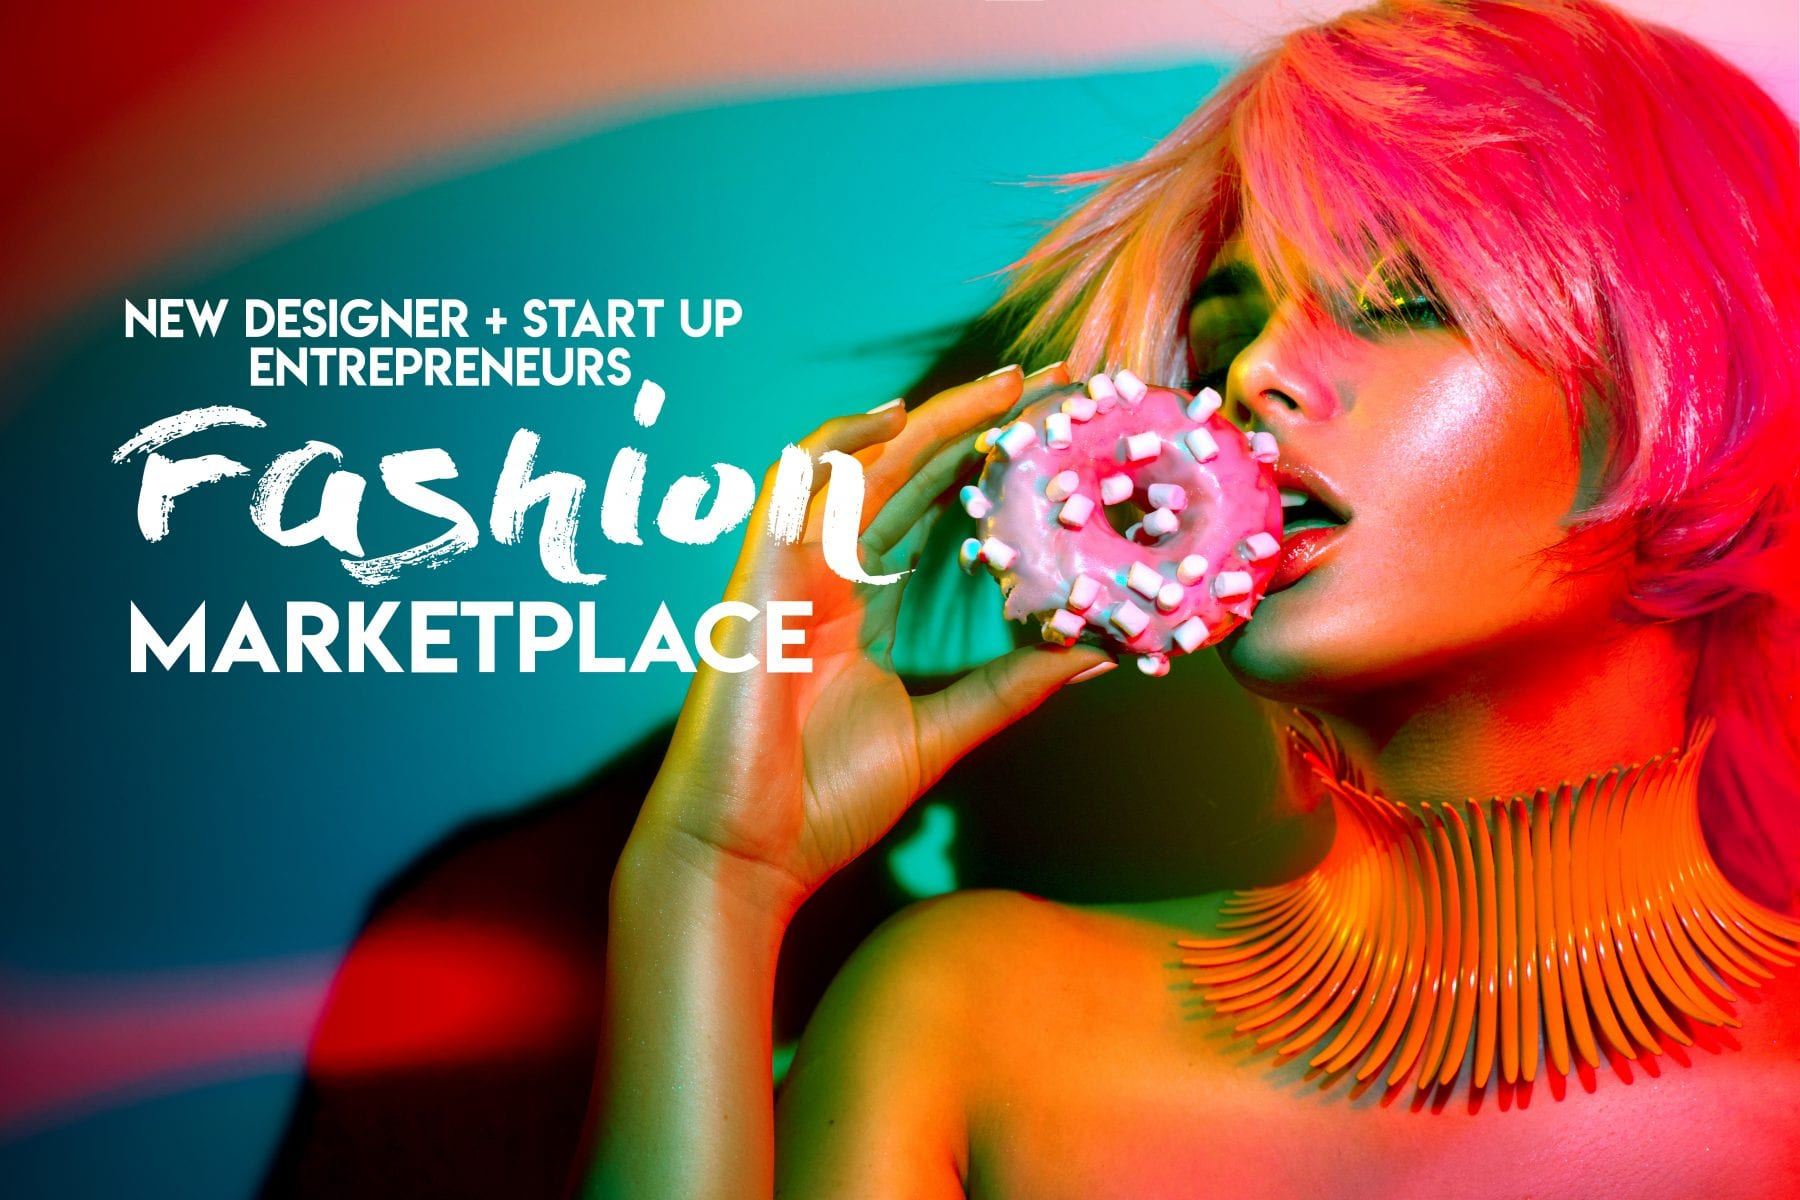 New Designers + Start Up Entrepreneurs Fashion Marketplace in Wynwood Miami